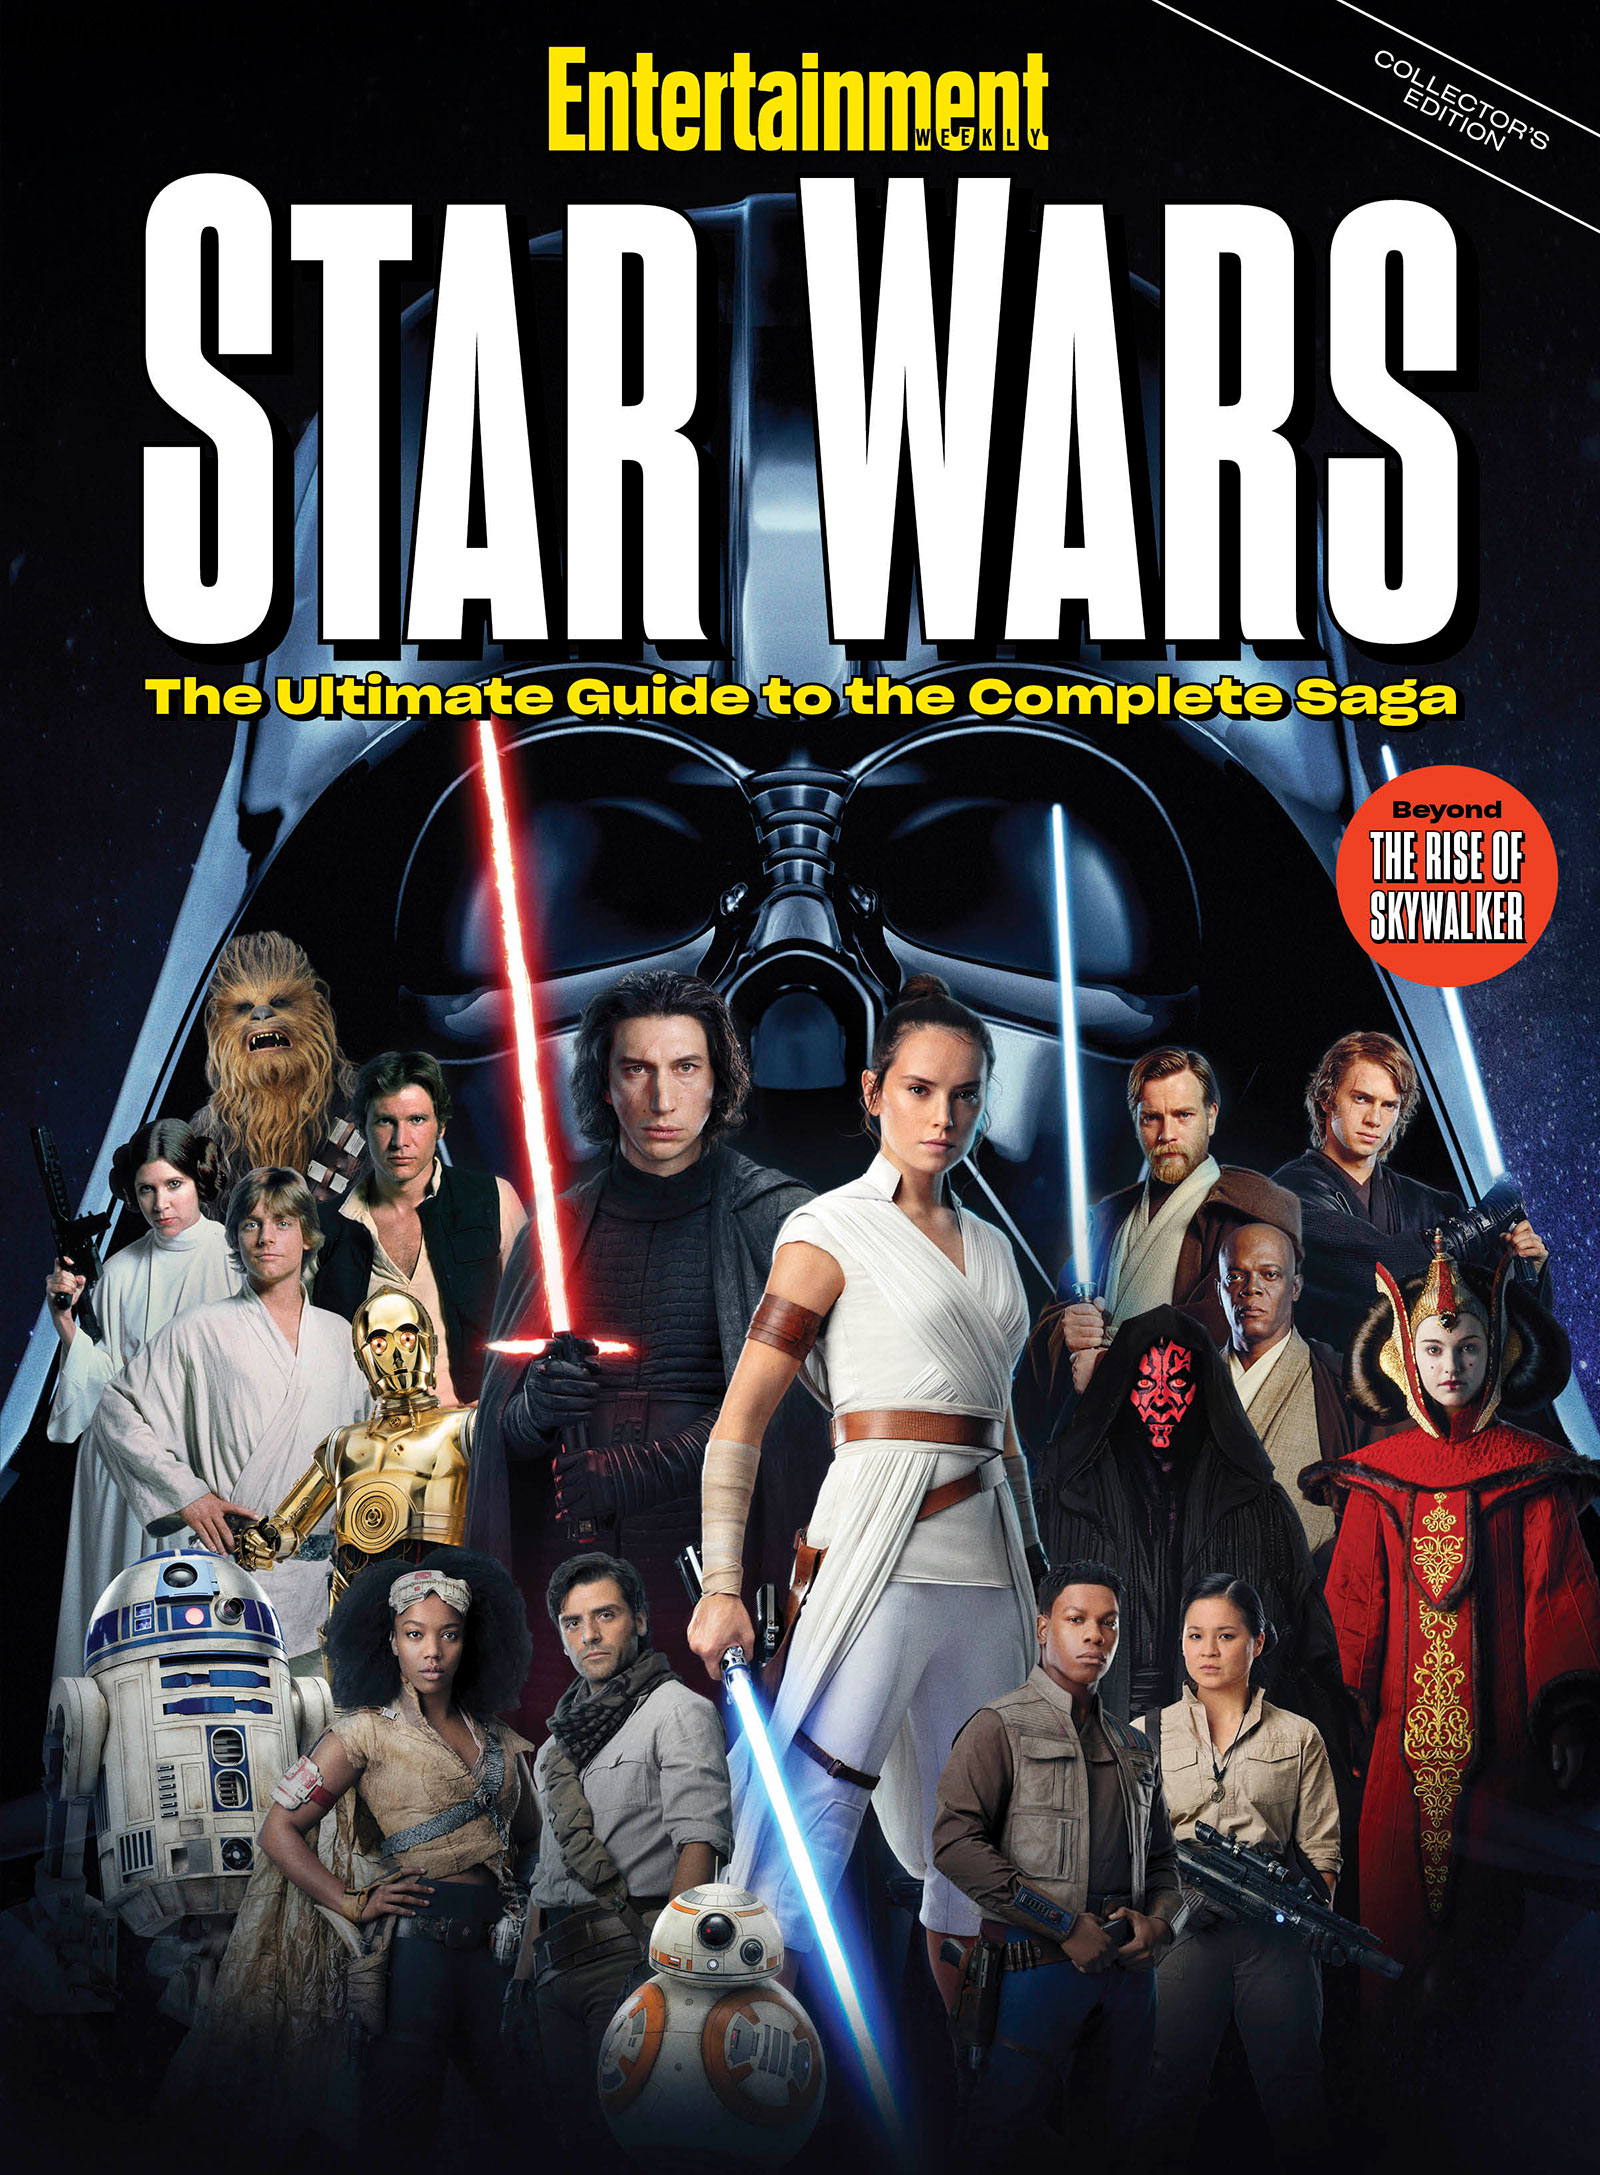 Star Wars: The Ultimate Guide to the Complete Saga (Entertainment Weekly Collector's Edition)